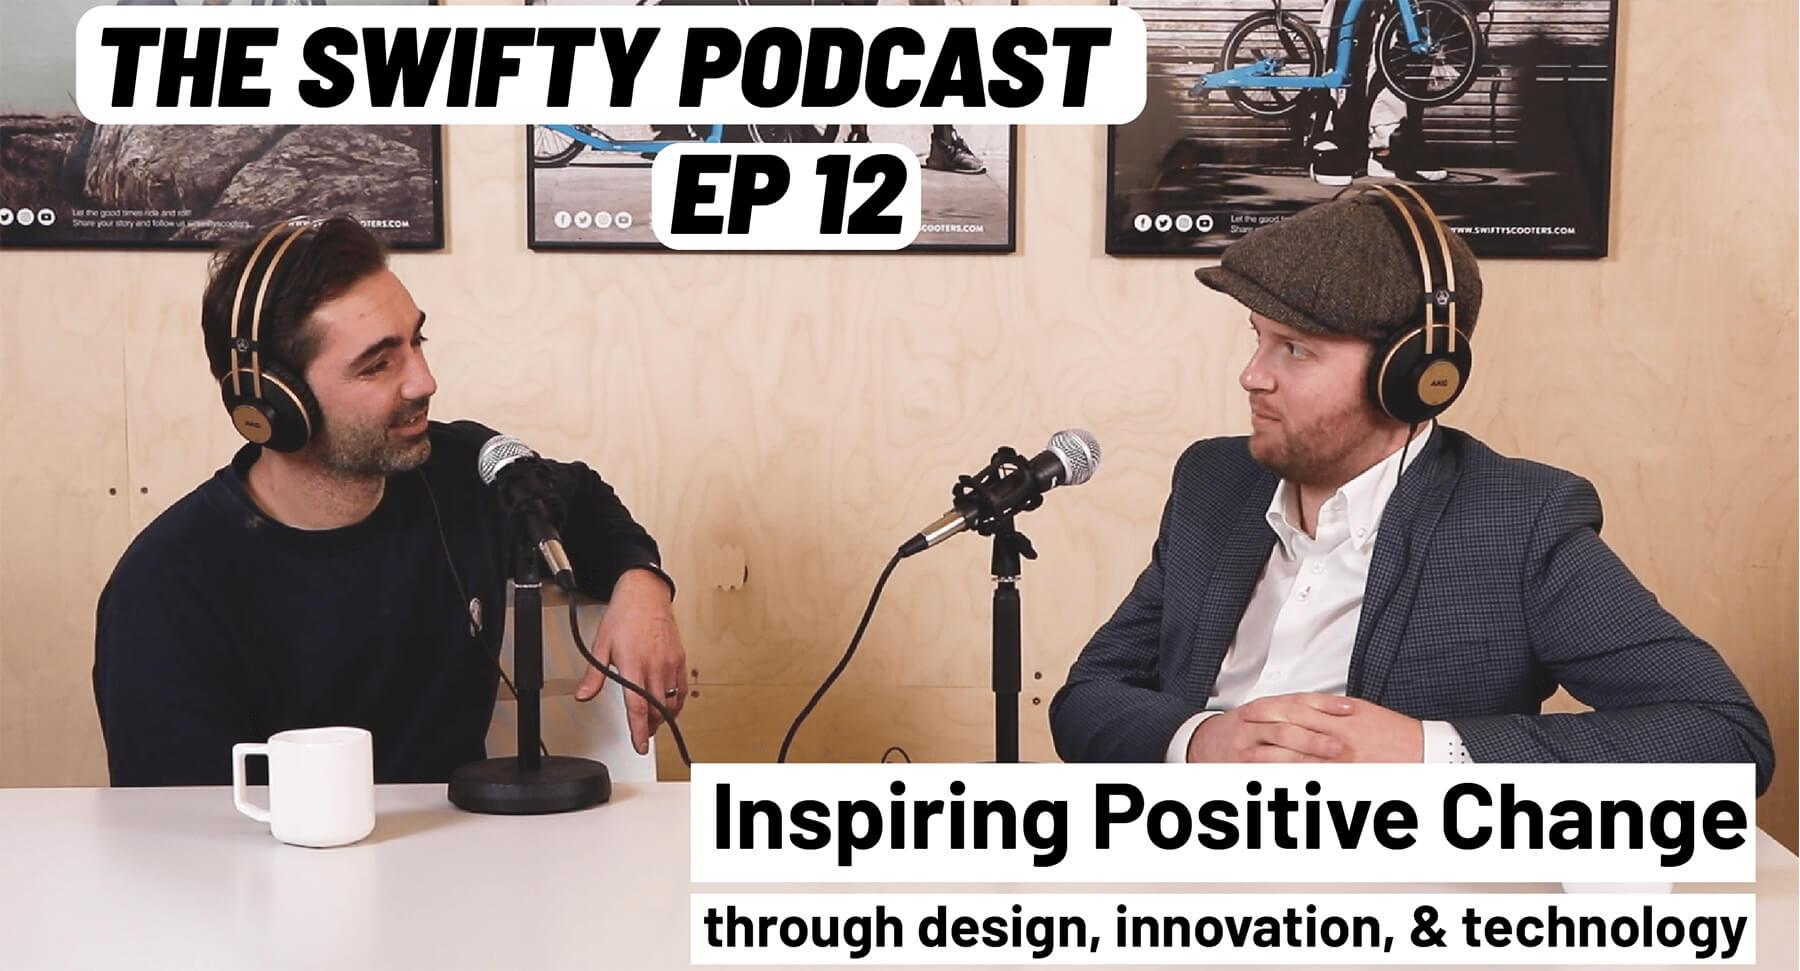 design podcast, positive podcast